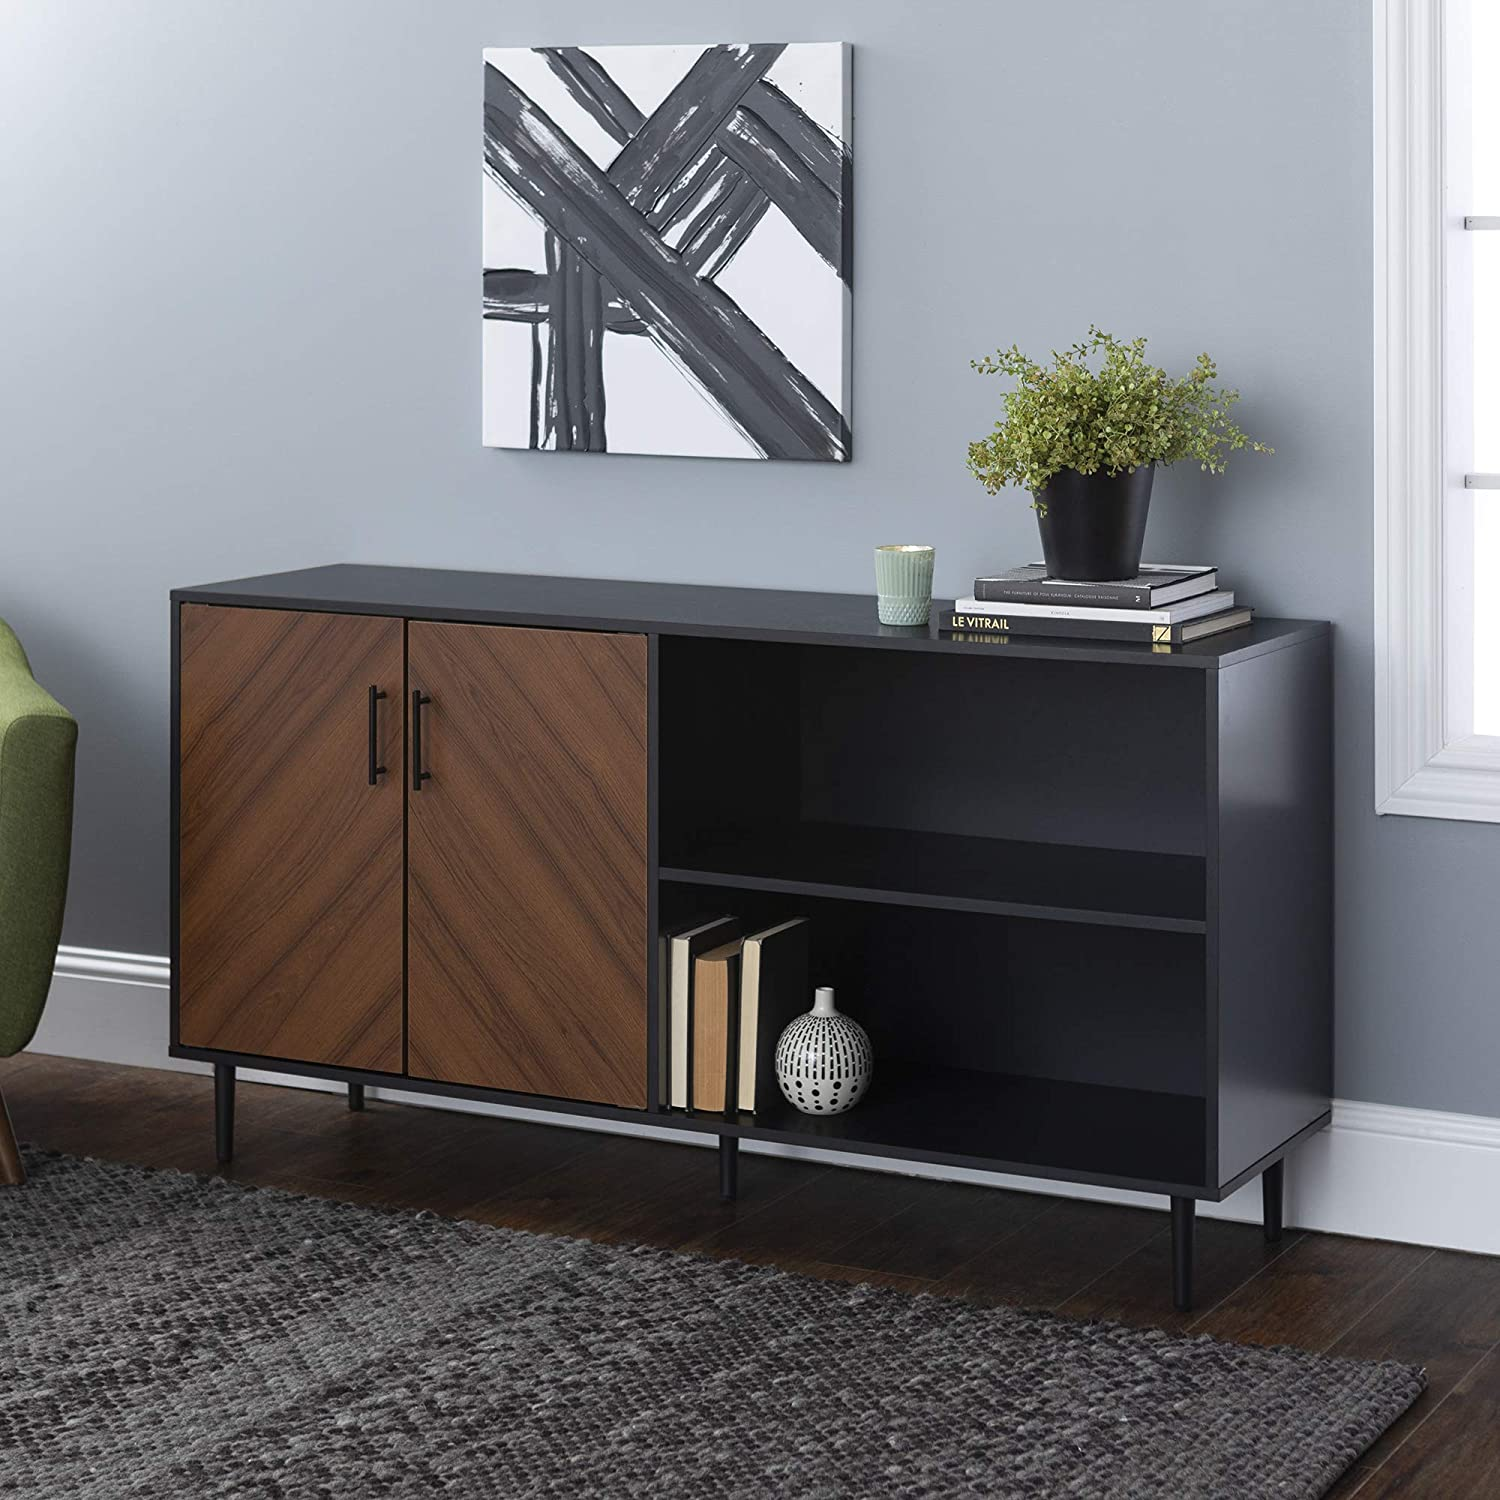 Walker Edison Caye Modern 2-Door-Bookmatch Asymmetrical Console for-TVs up to 65 Inches, 58 Inch, Solid Black